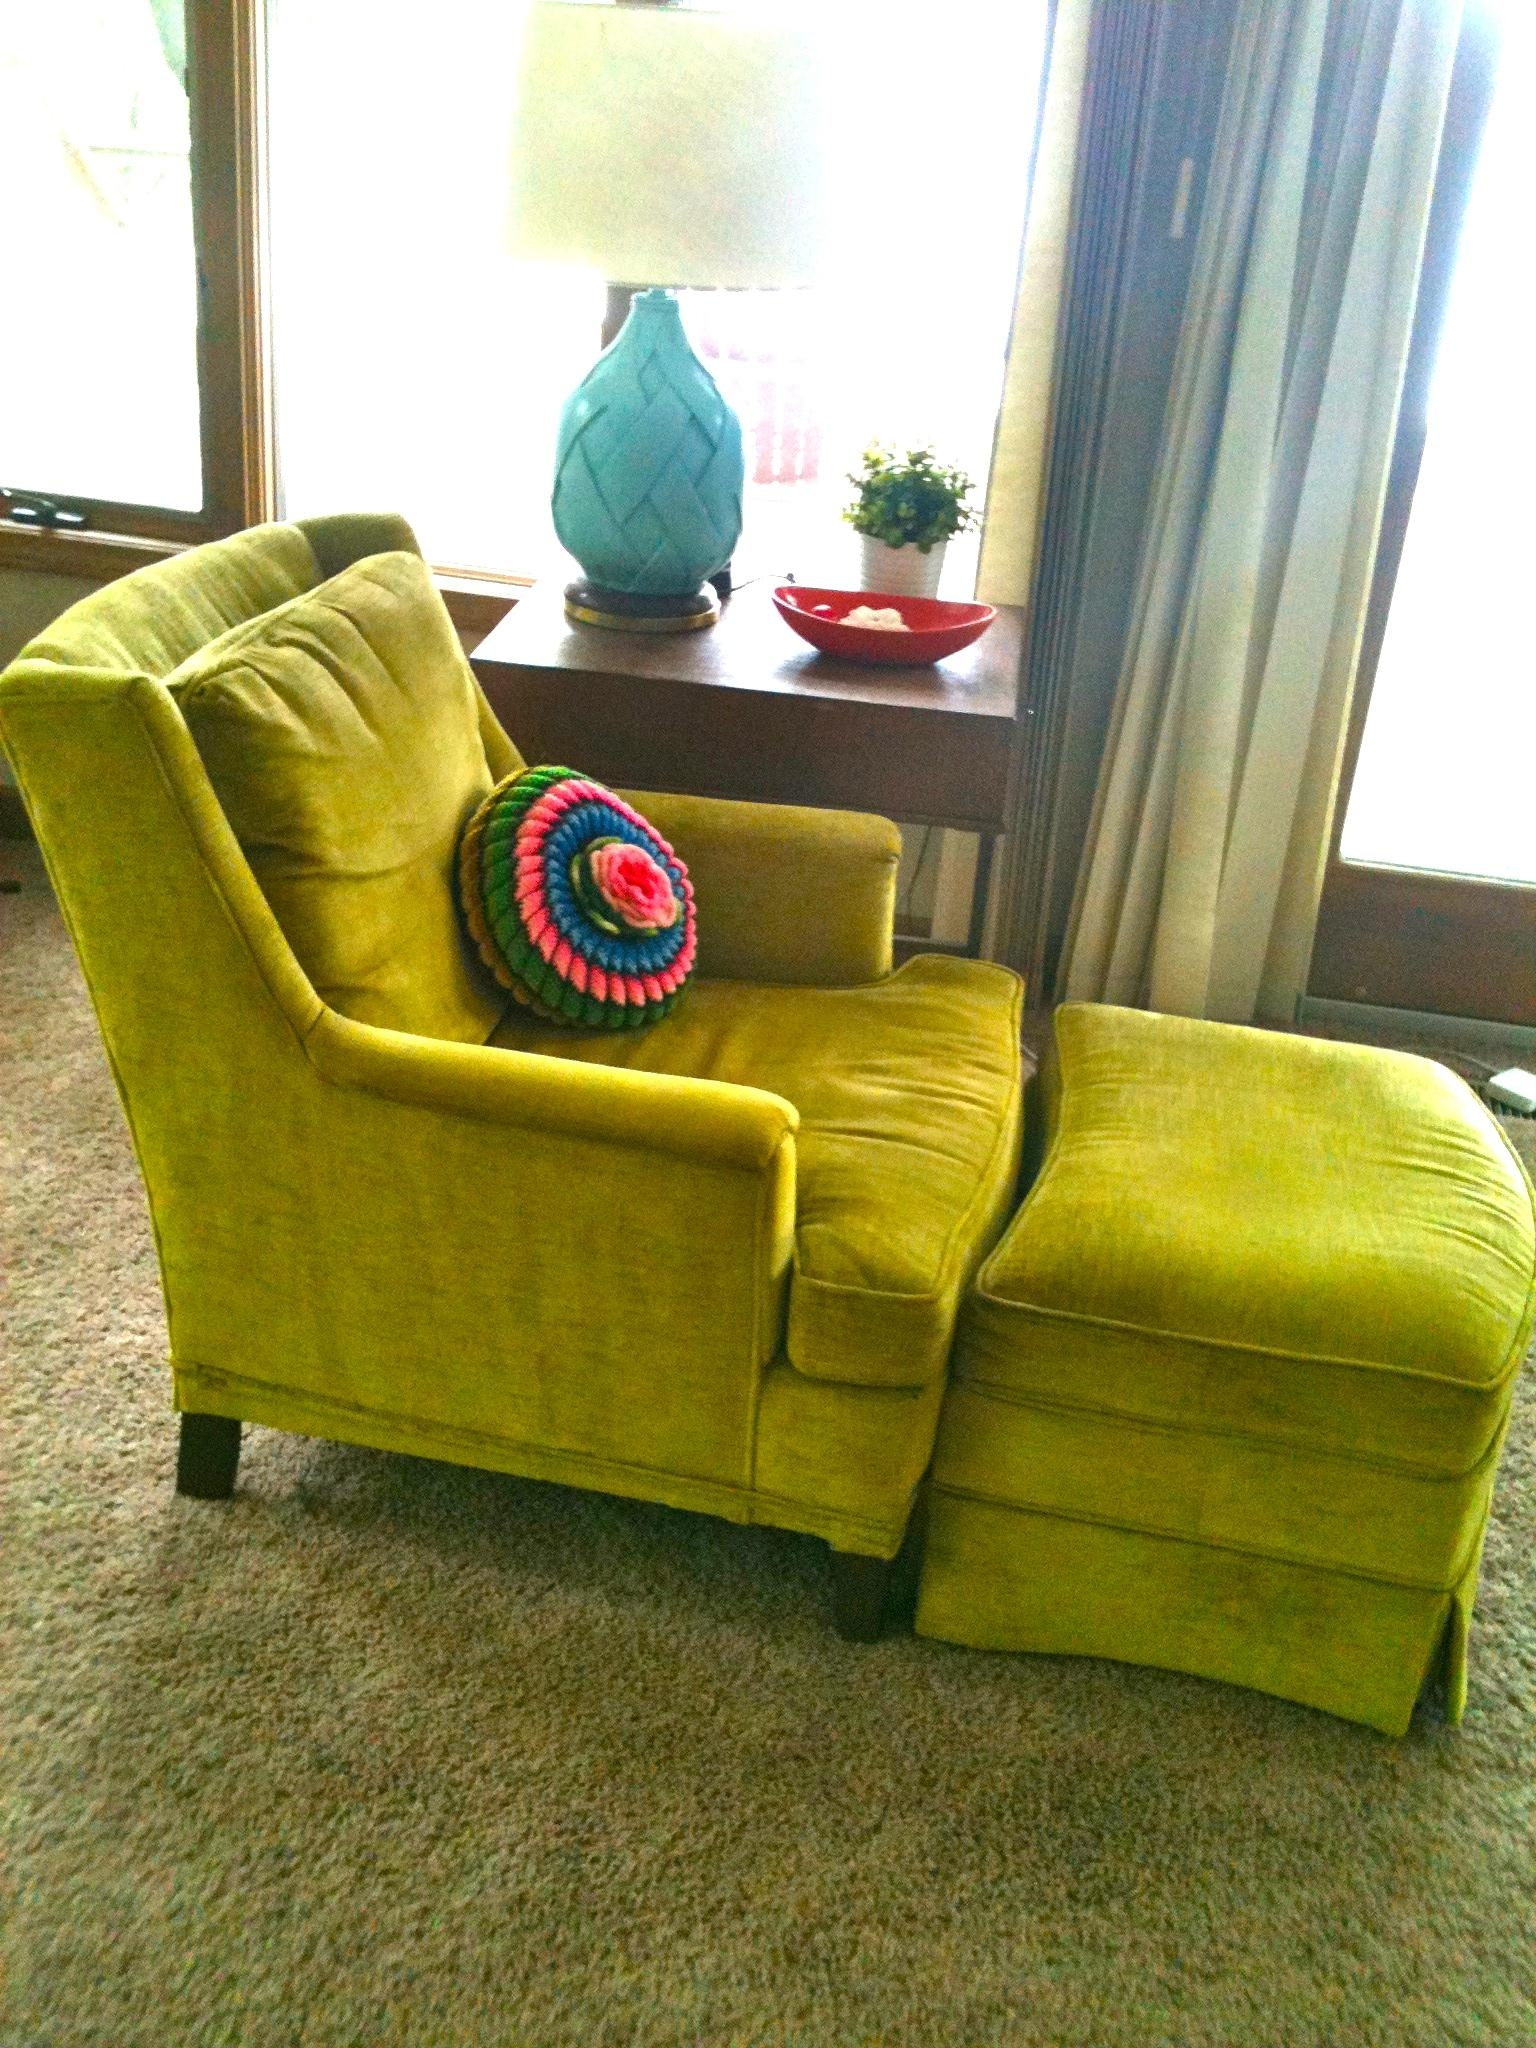 Chartreuse Sofa With Concept Hd Pictures 27445 | Kengire Within Chartreuse Sofas (Image 10 of 20)